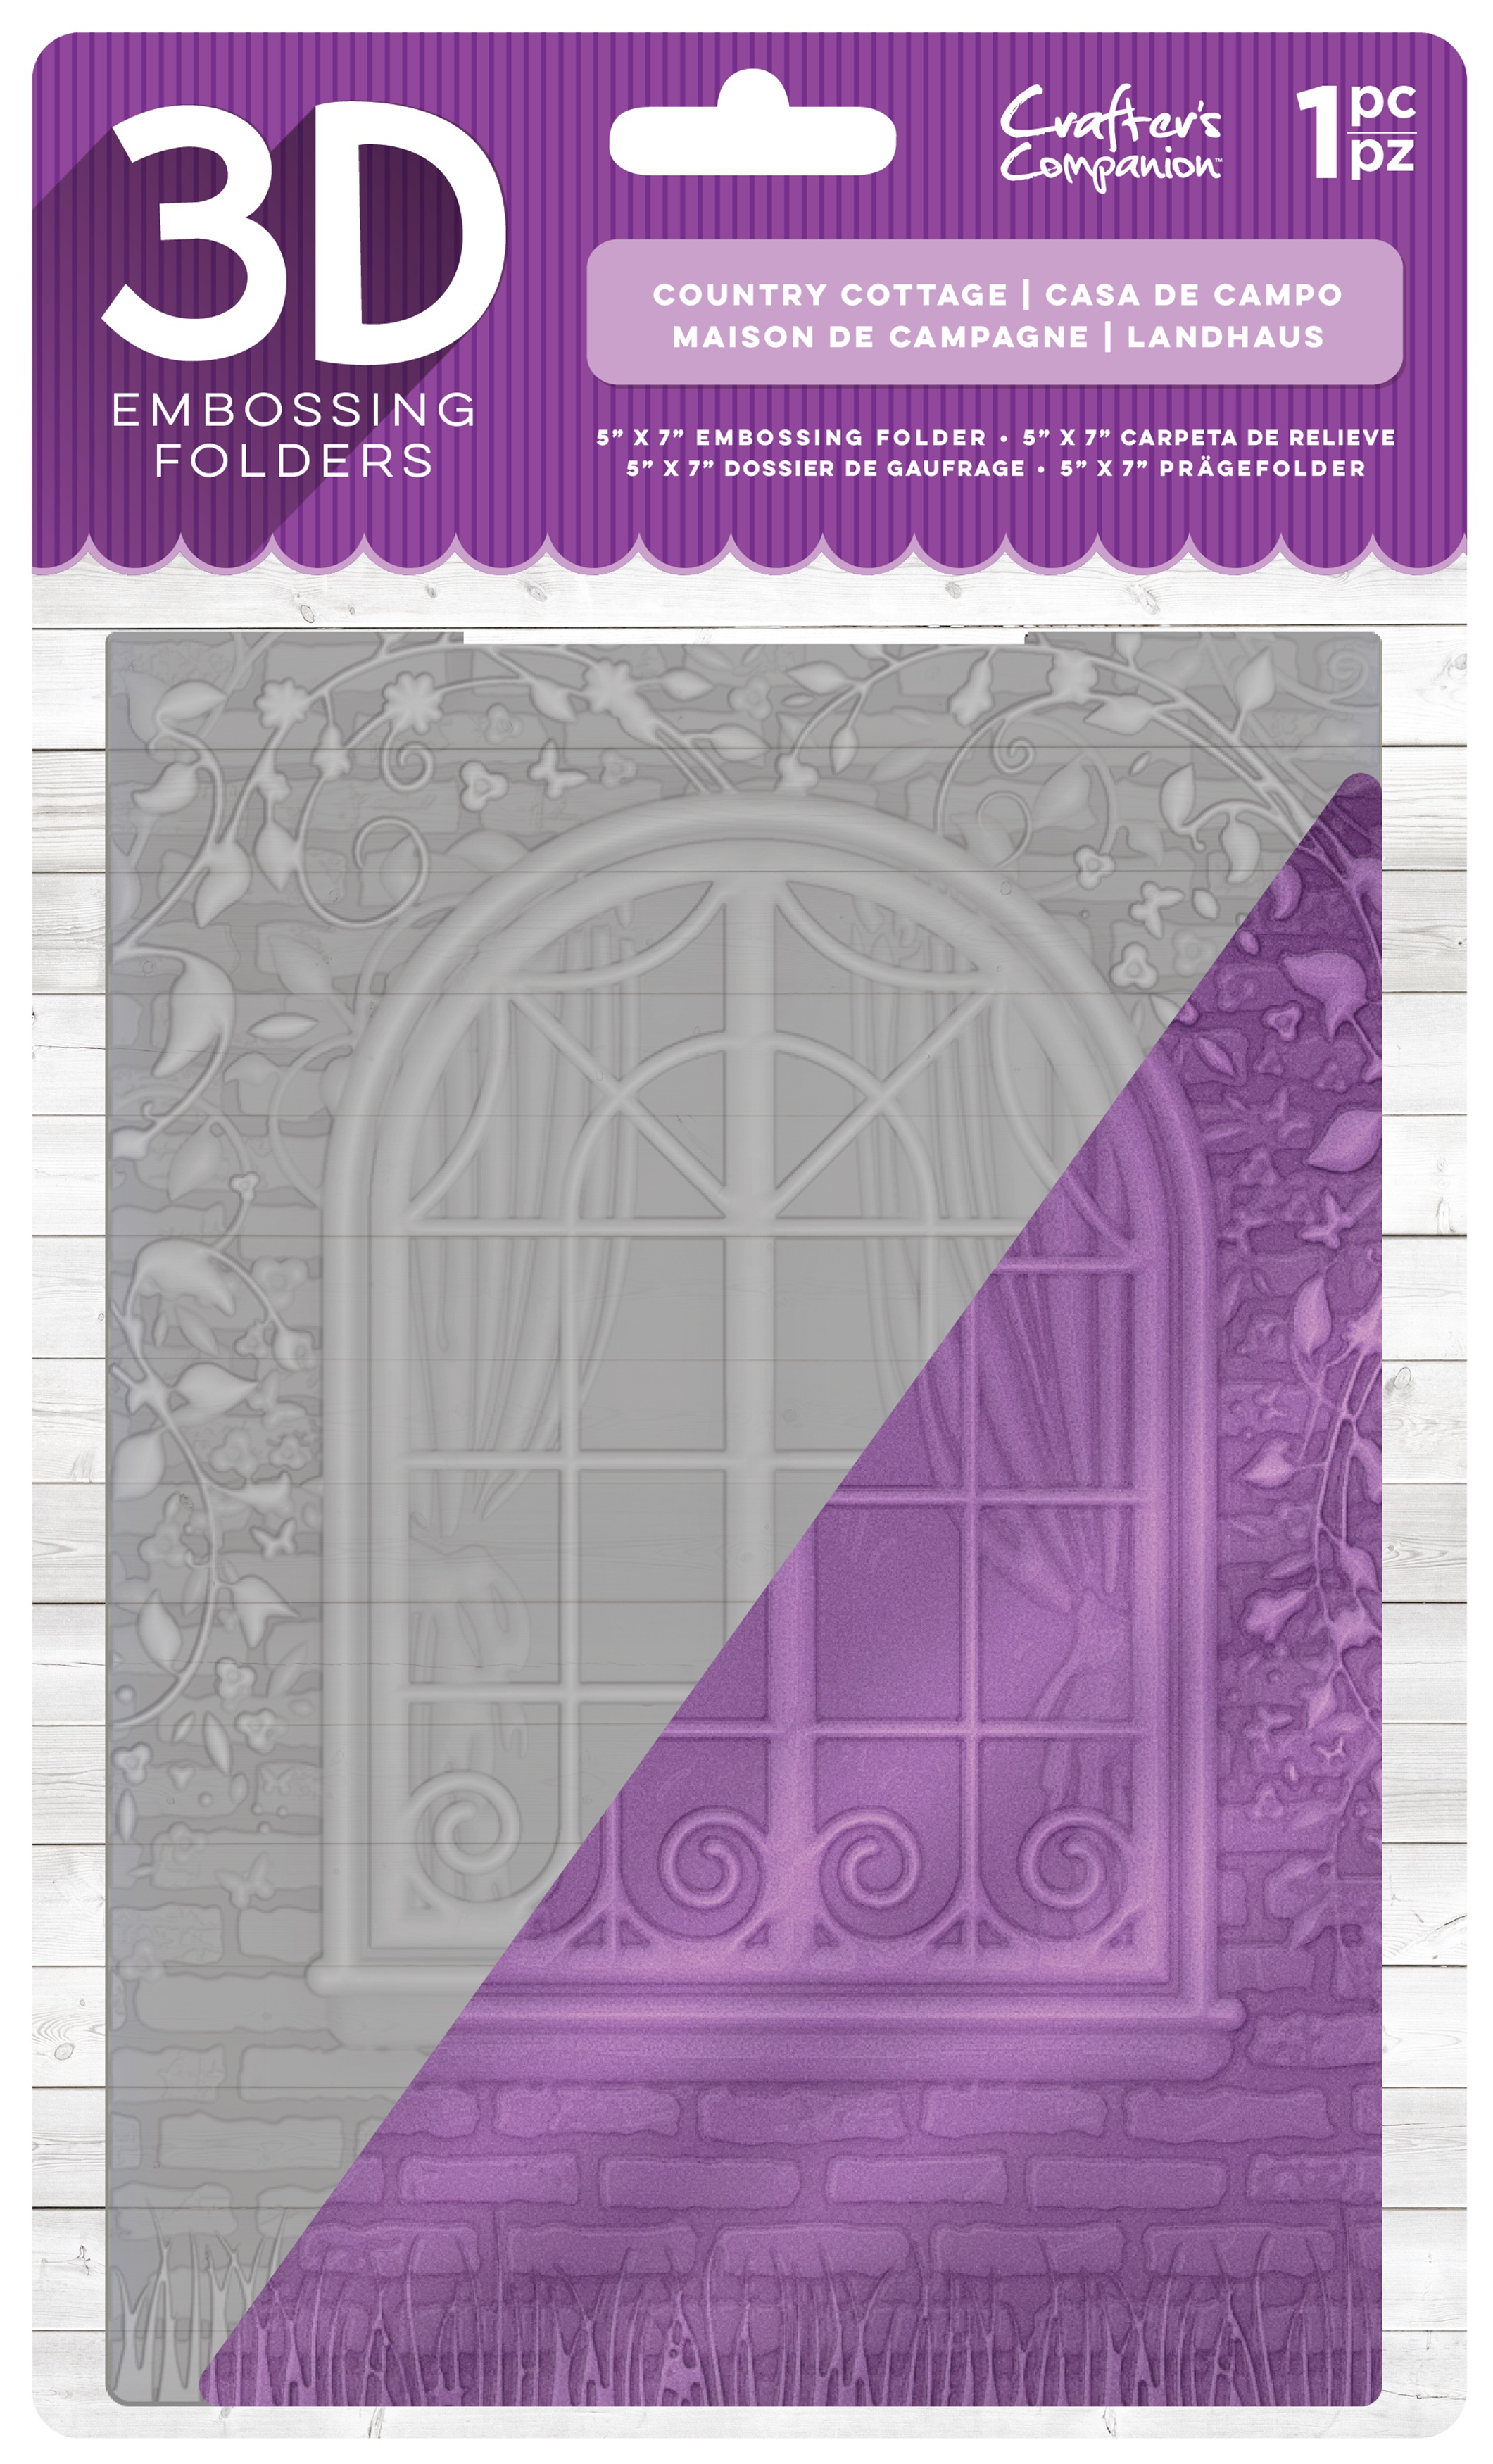 Crafter's Companion 3D Embossing Folder 5X7-Country Cottage